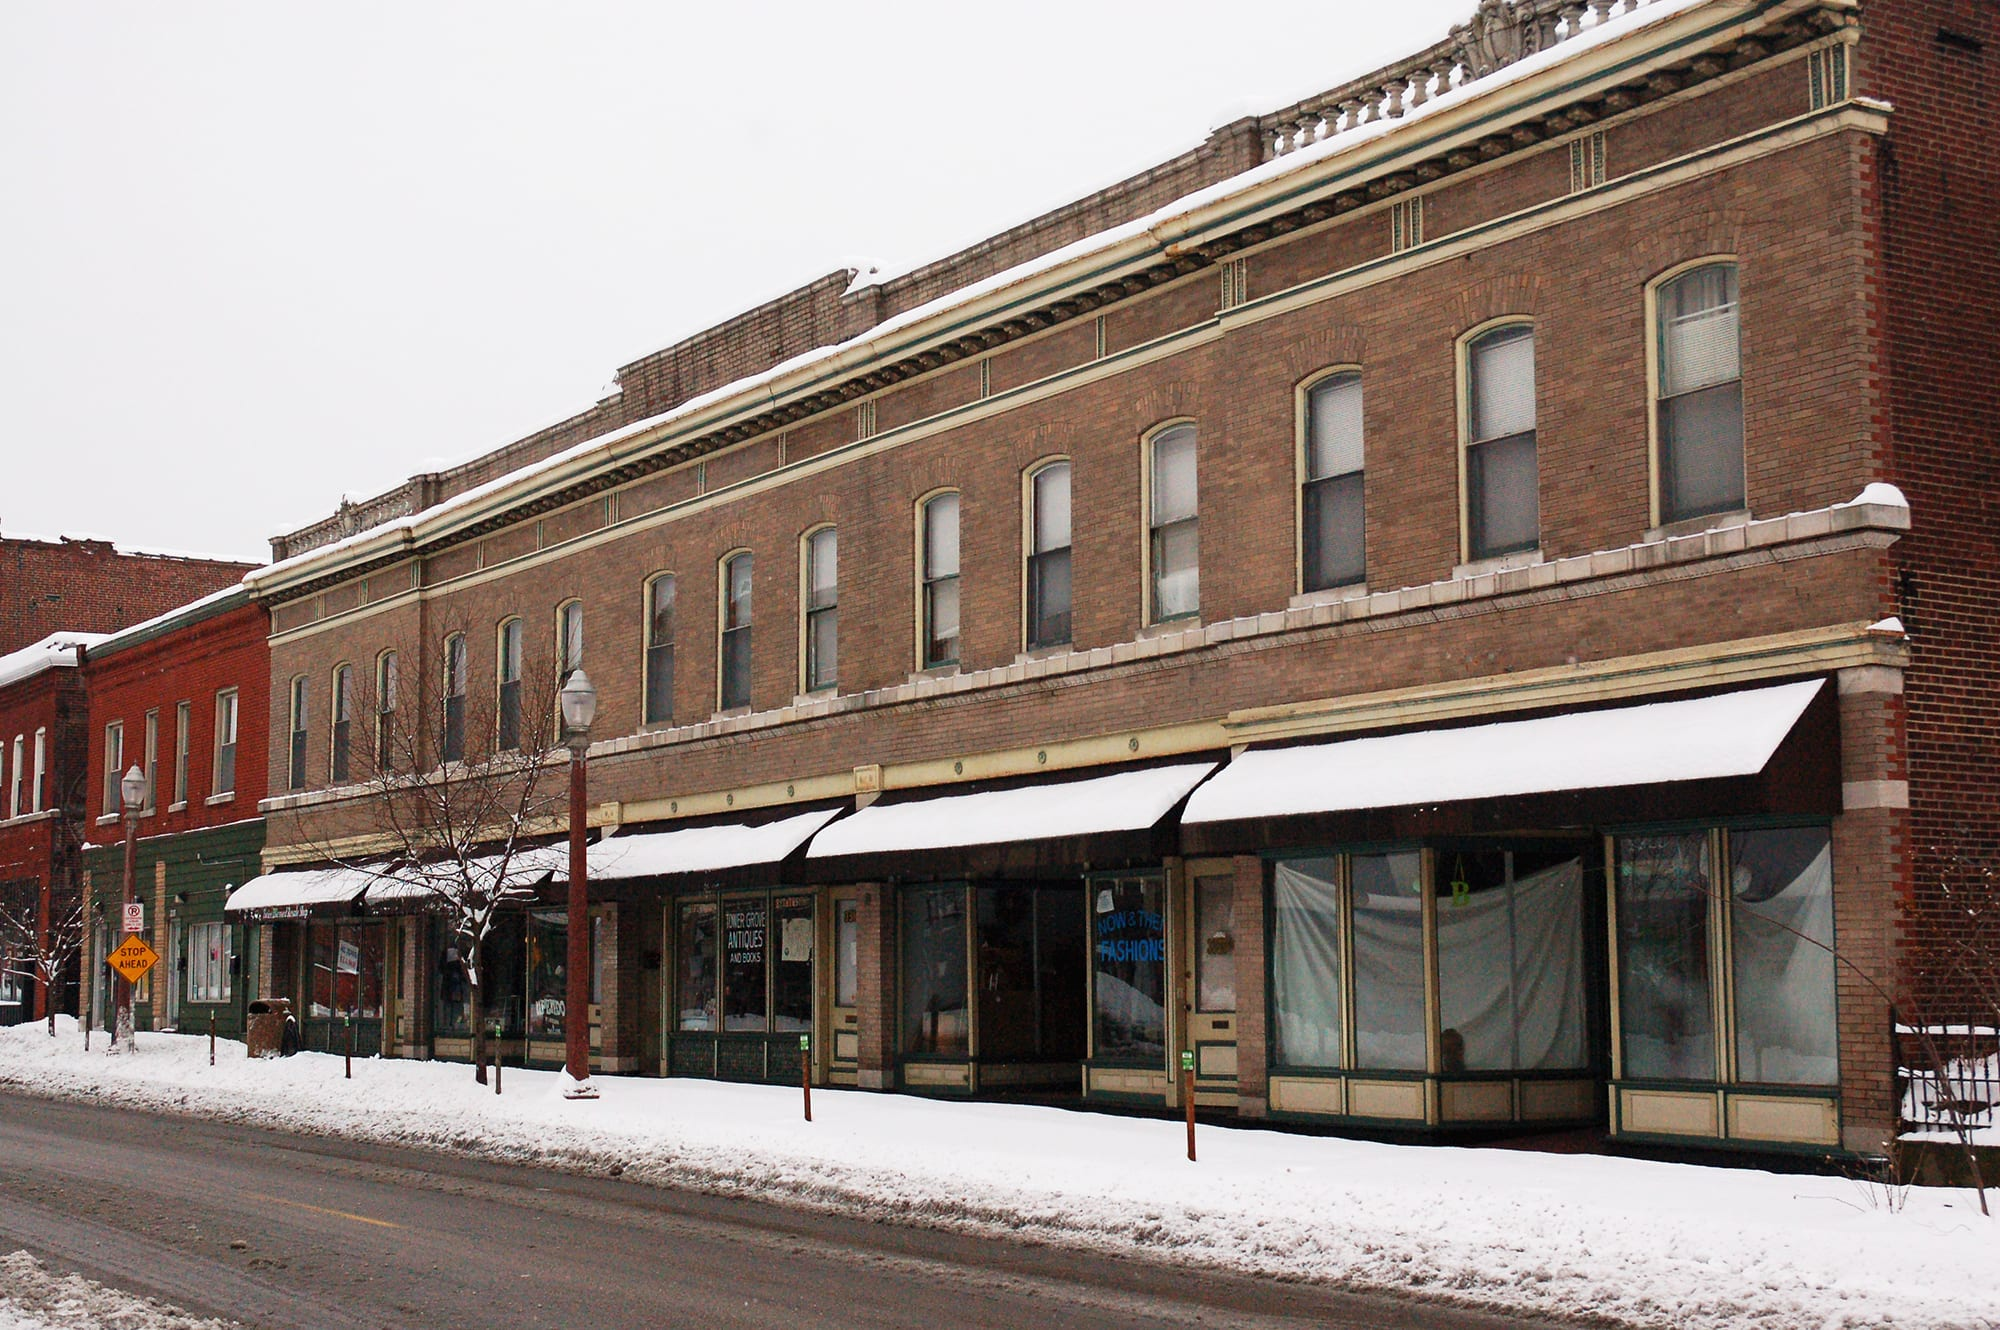 Shops on Meramec in the snow.